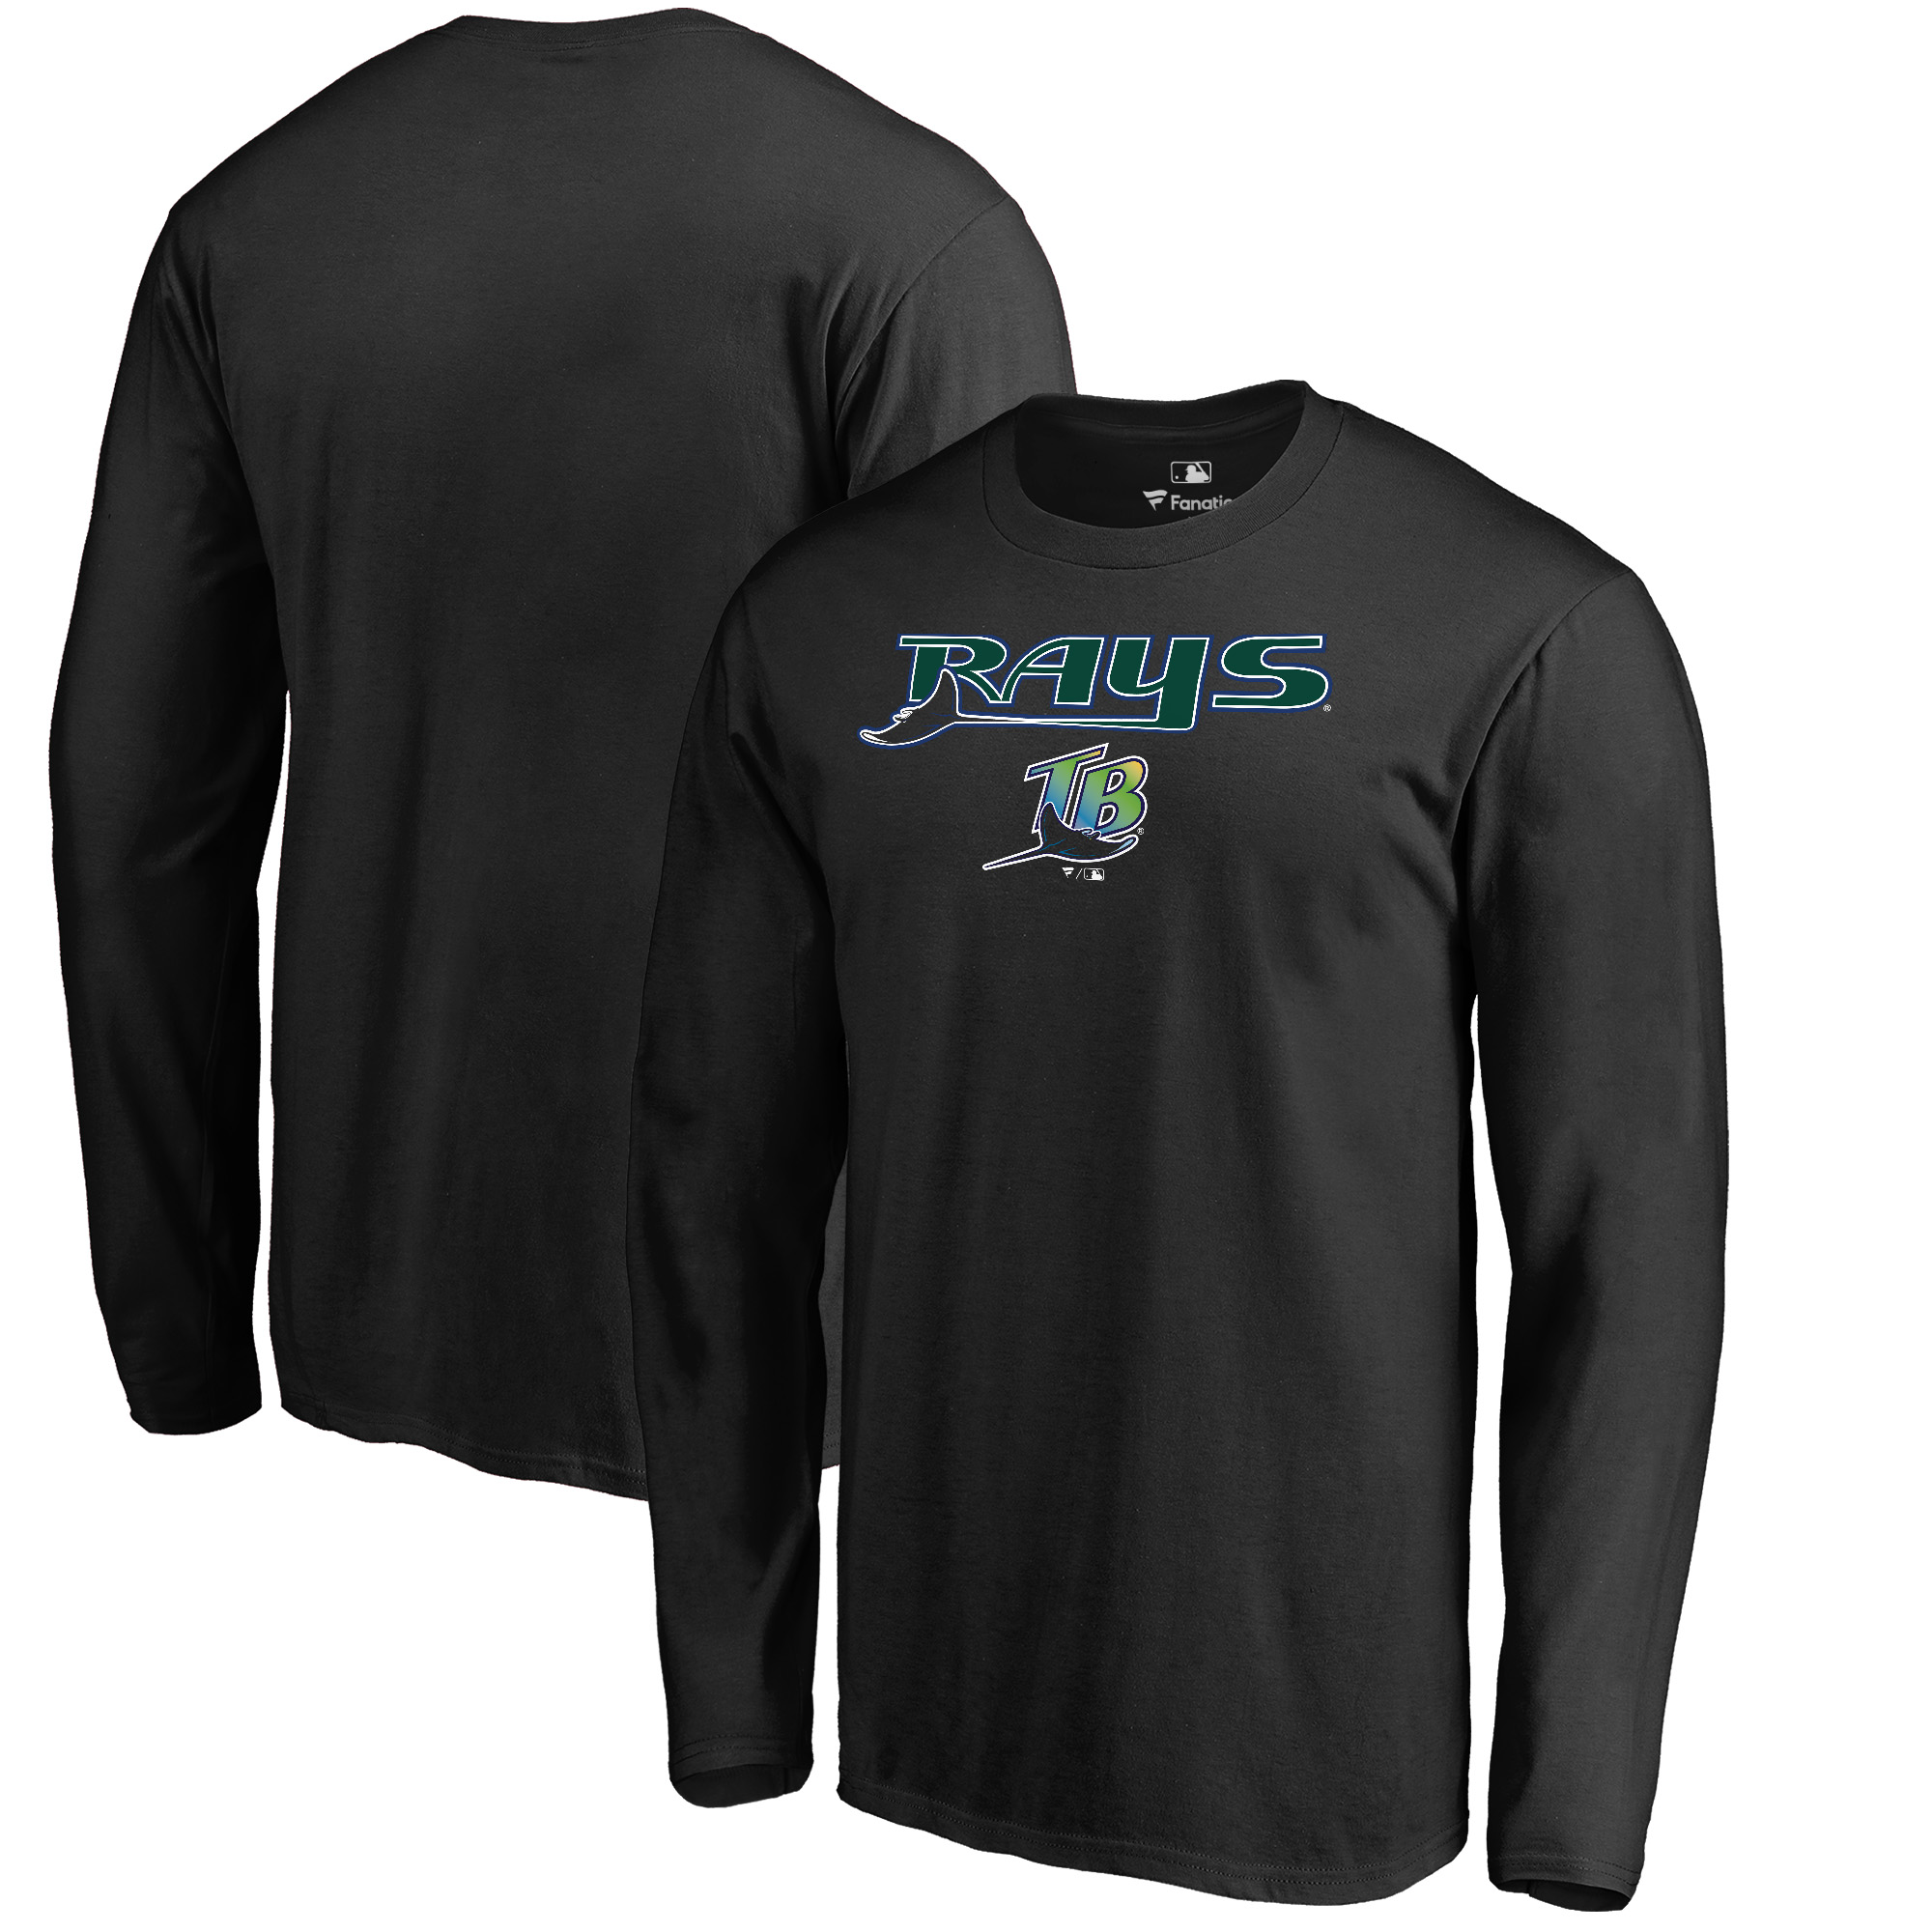 Tampa Bay Rays Fanatics Branded Big & Tall Cooperstown Collection Wahconah Long Sleeve T-Shirt - Black